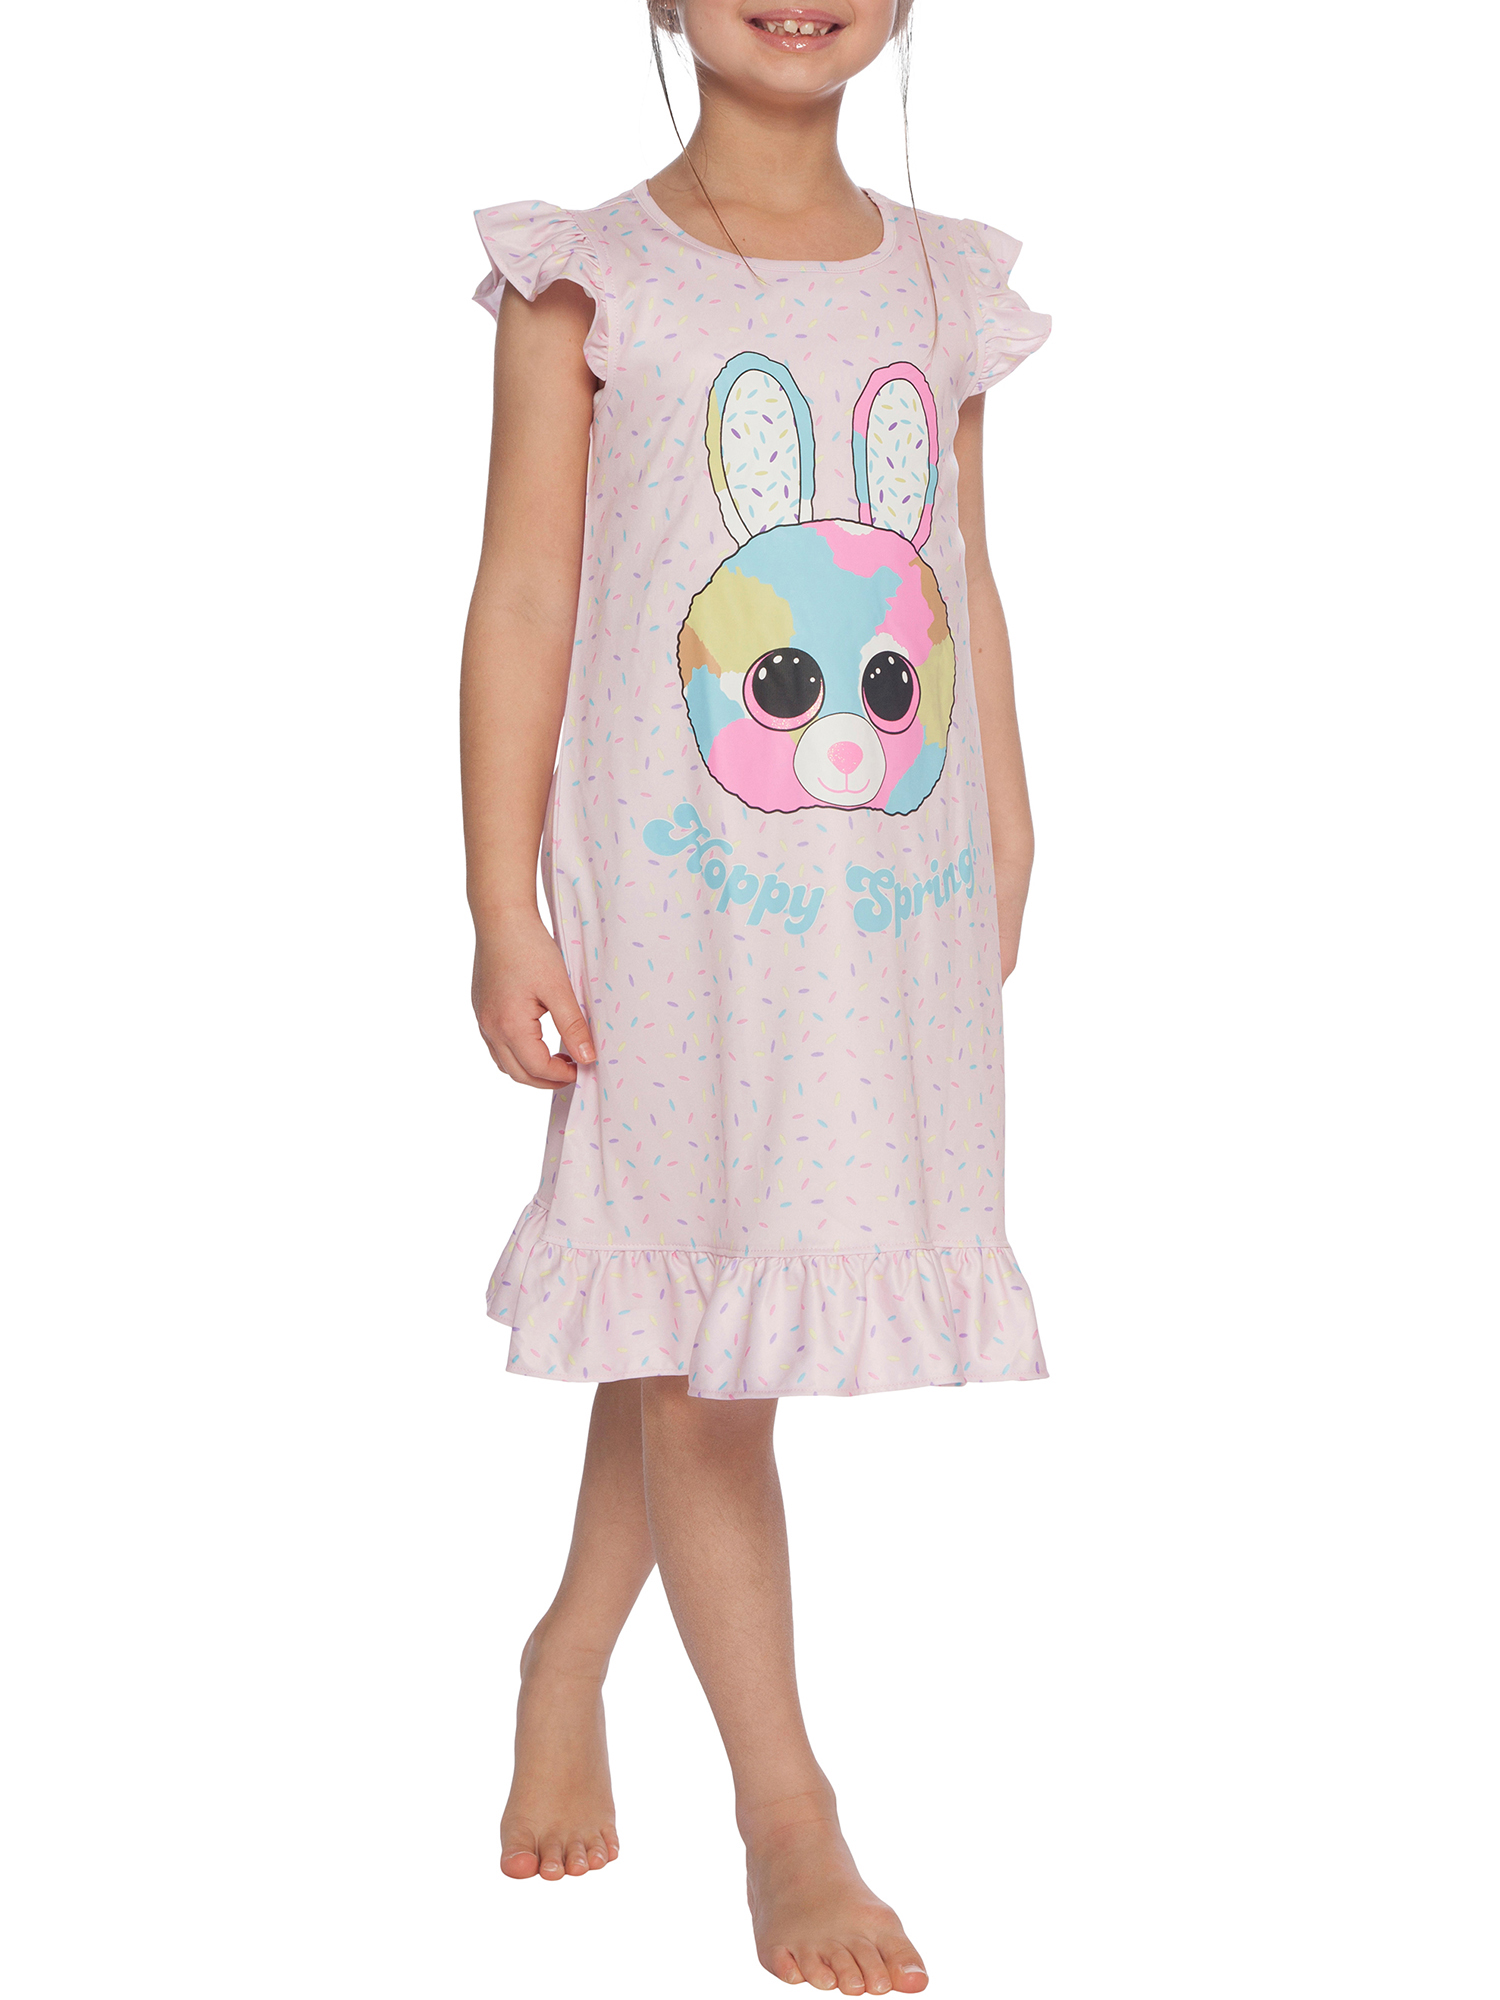 Girls' TY Beanie Boo Little Bubby Bunny Pajama Nightgown (Little Girl & Big Girl)